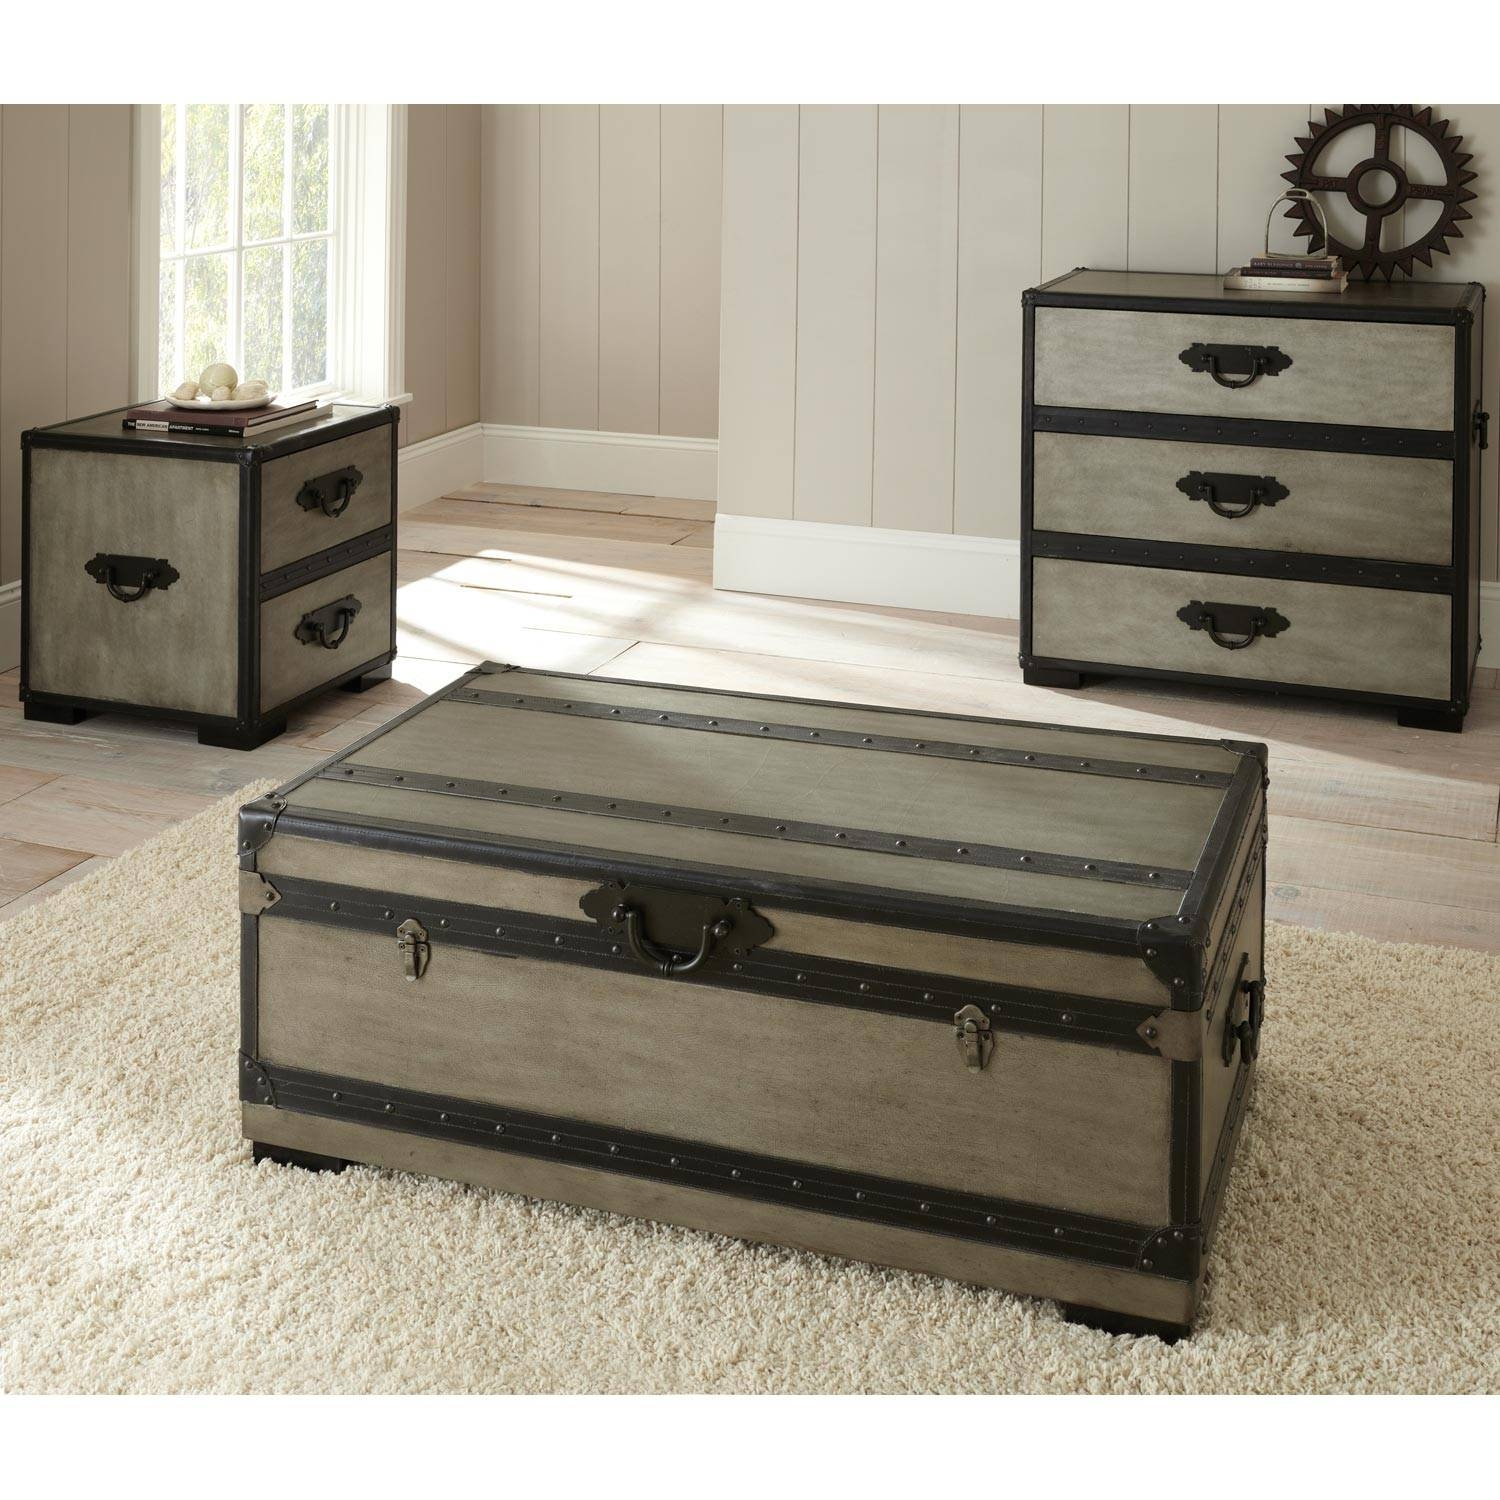 Storage Chest Coffee Table Wicker Chest Coffee Table Modern Trunk regarding Trunk Chest Coffee Tables (Image 23 of 30)